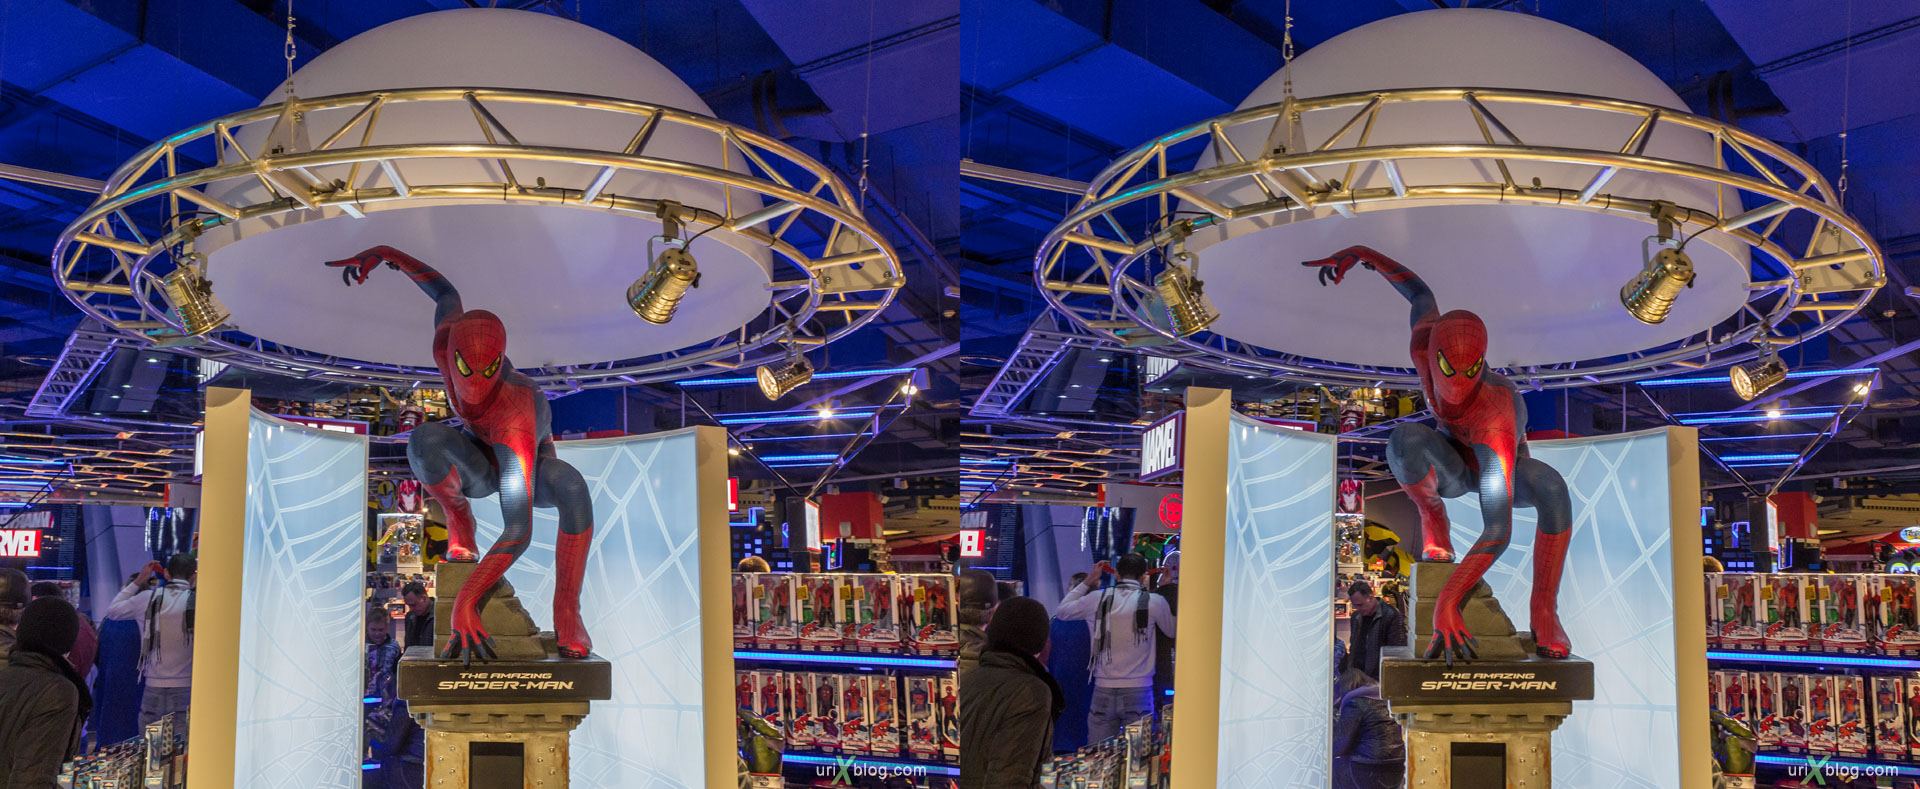 Spiderman, Hamleys-World, Central Childrens World, Shop, Store, Lubyanskaya square, Moscow, Russia, 3D, stereo pair, cross-eyed, crossview, cross view stereo pair, stereoscopic, 2015